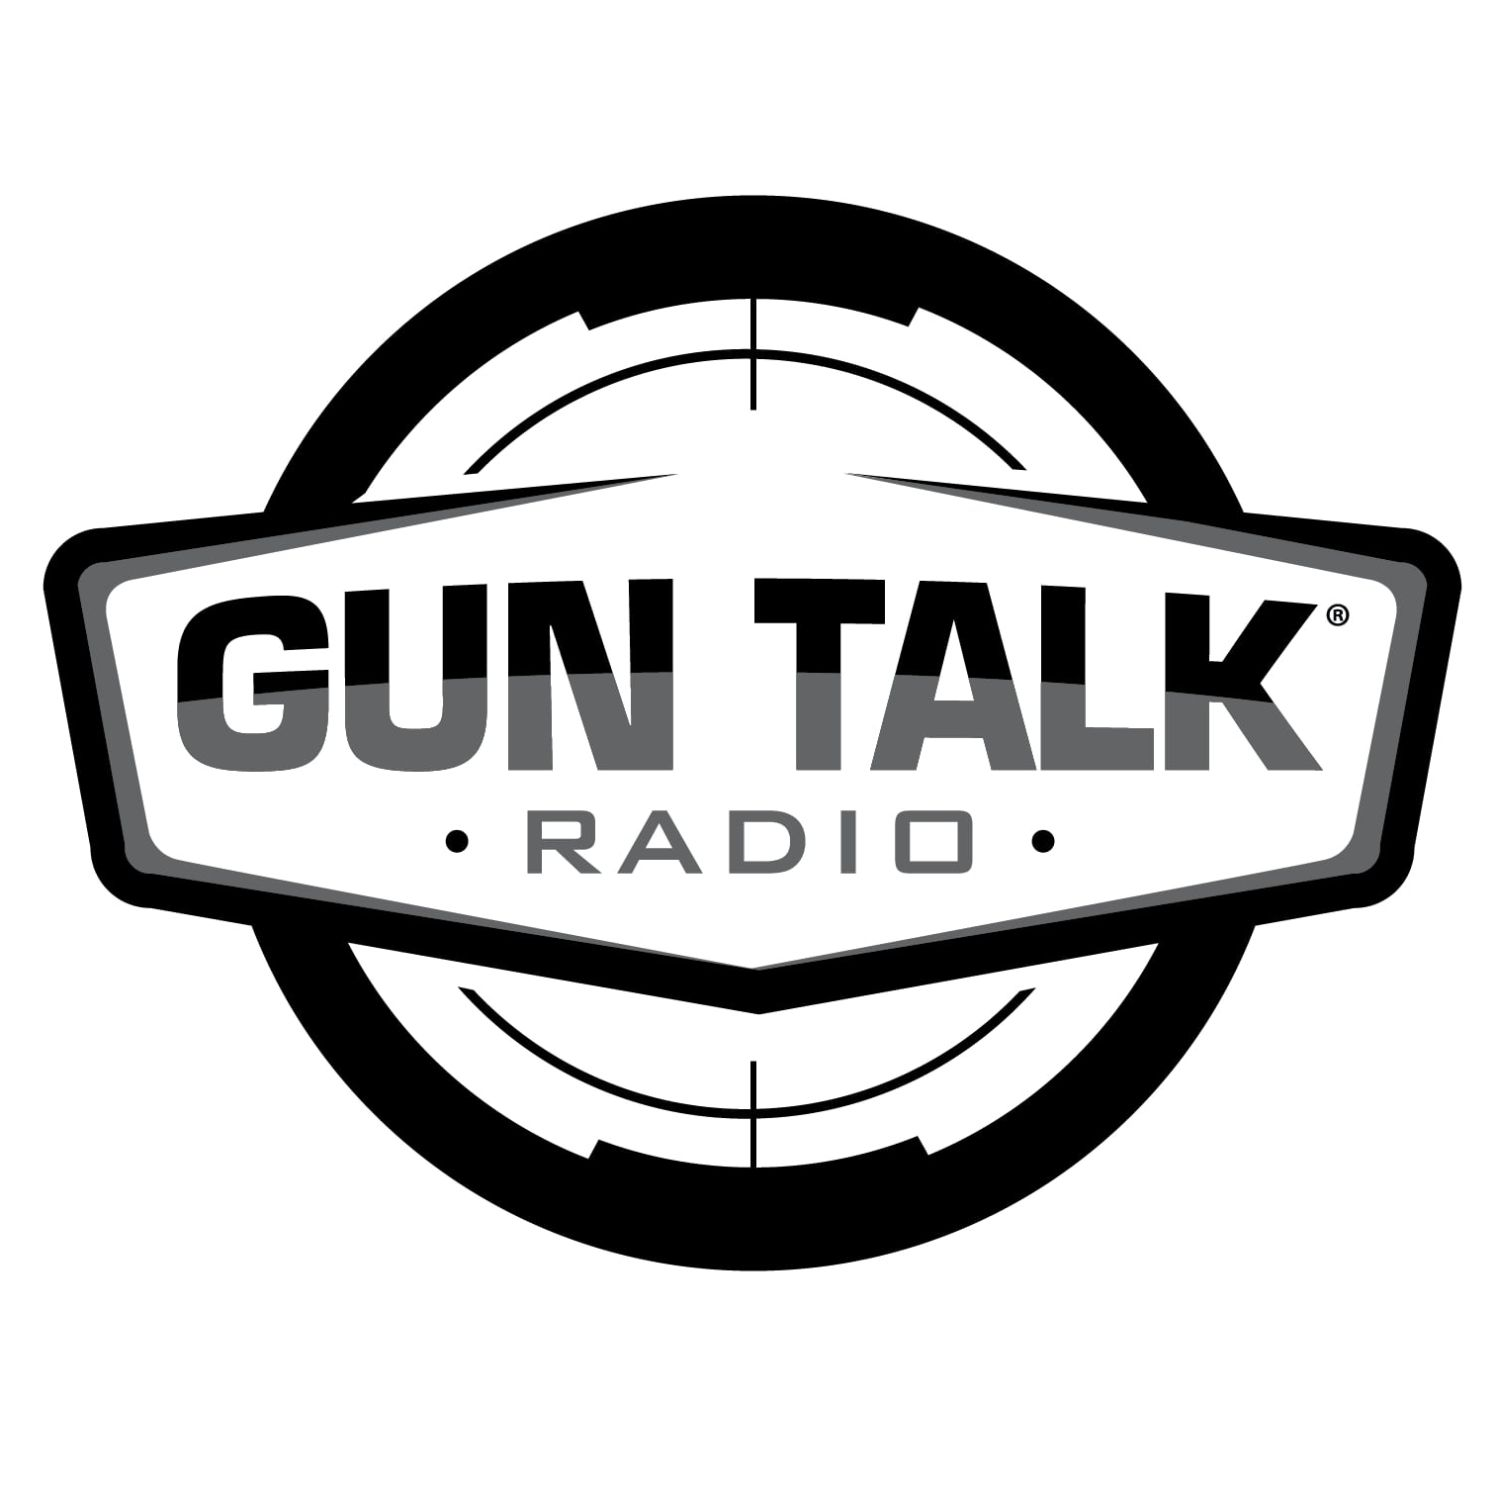 Artwork for Guntalk 2008-04-20 Part B